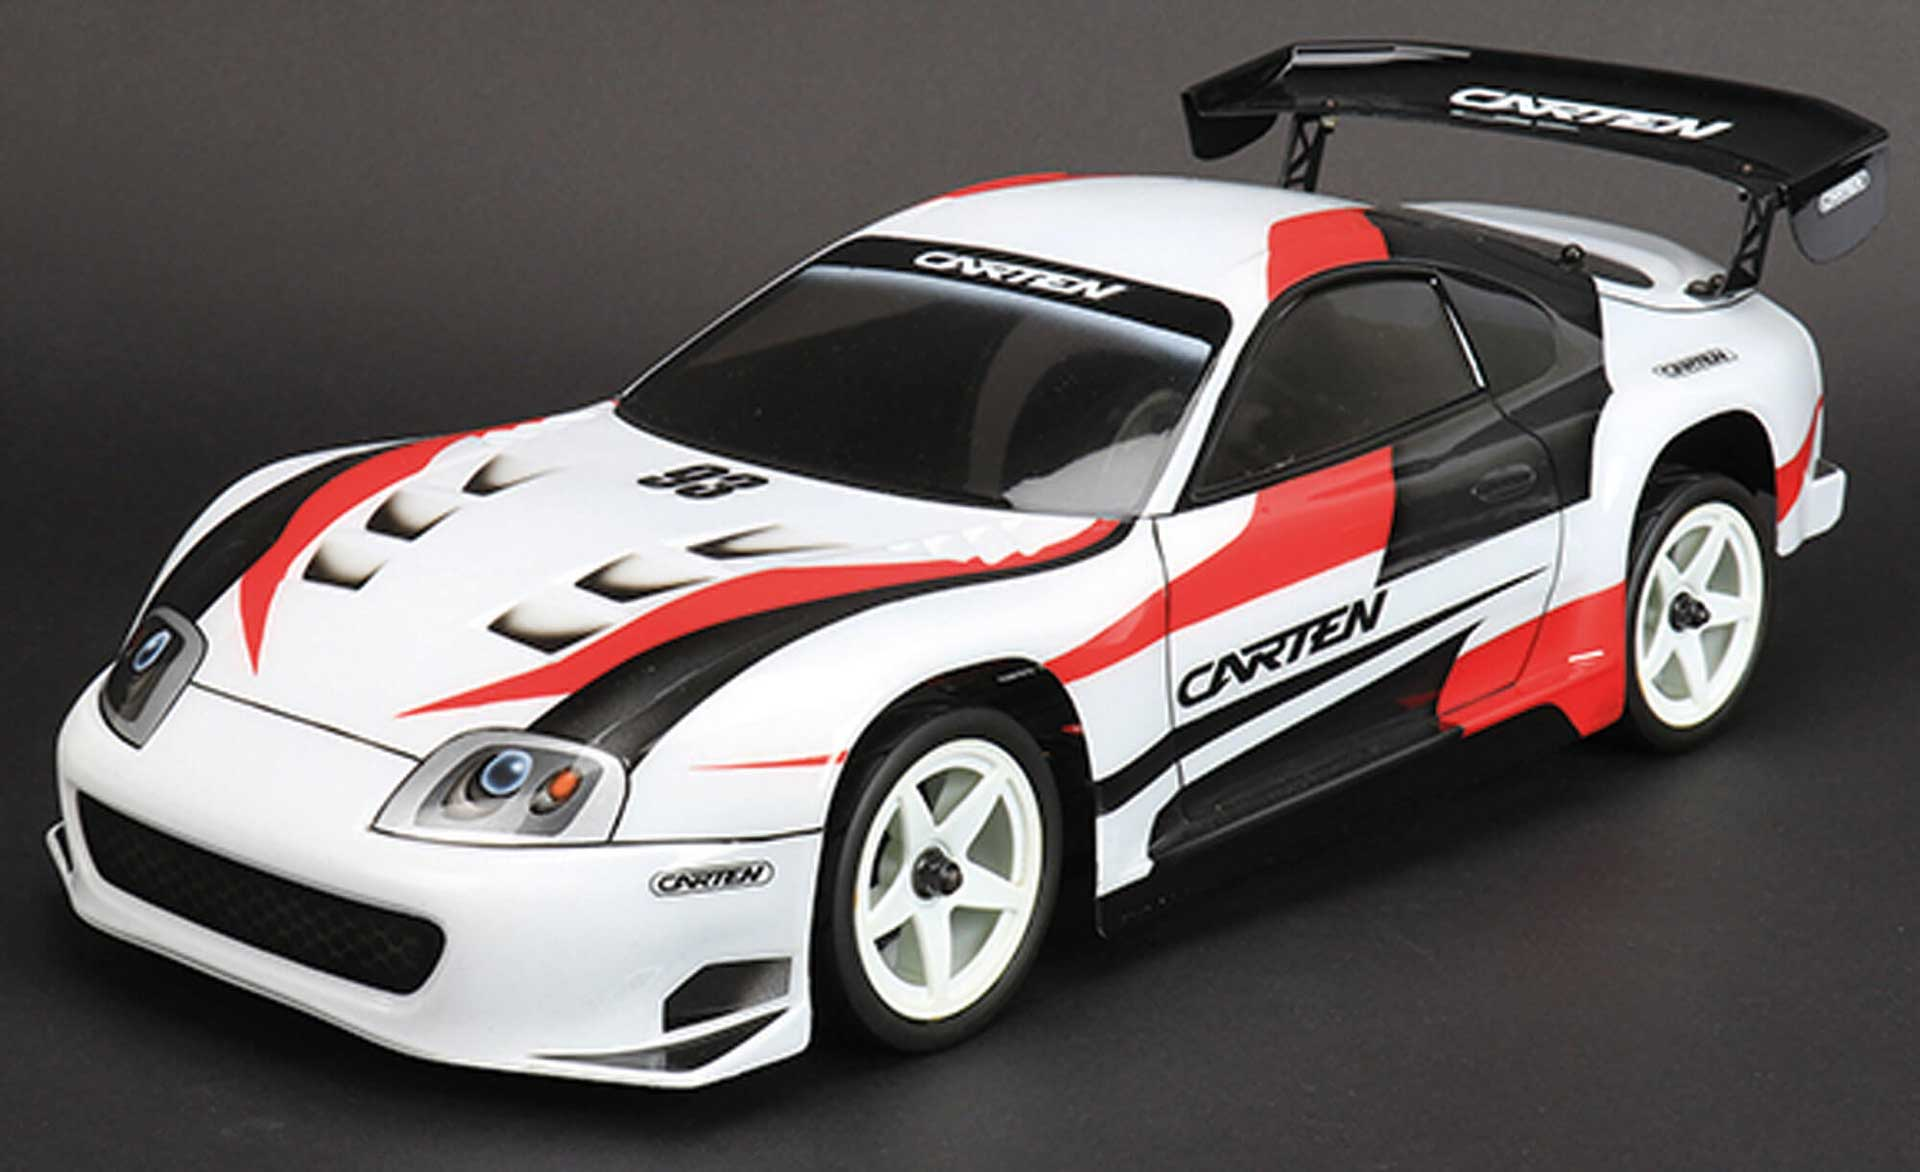 CARTEN SUPRA TC Body 1/10 (190mm) unpainted